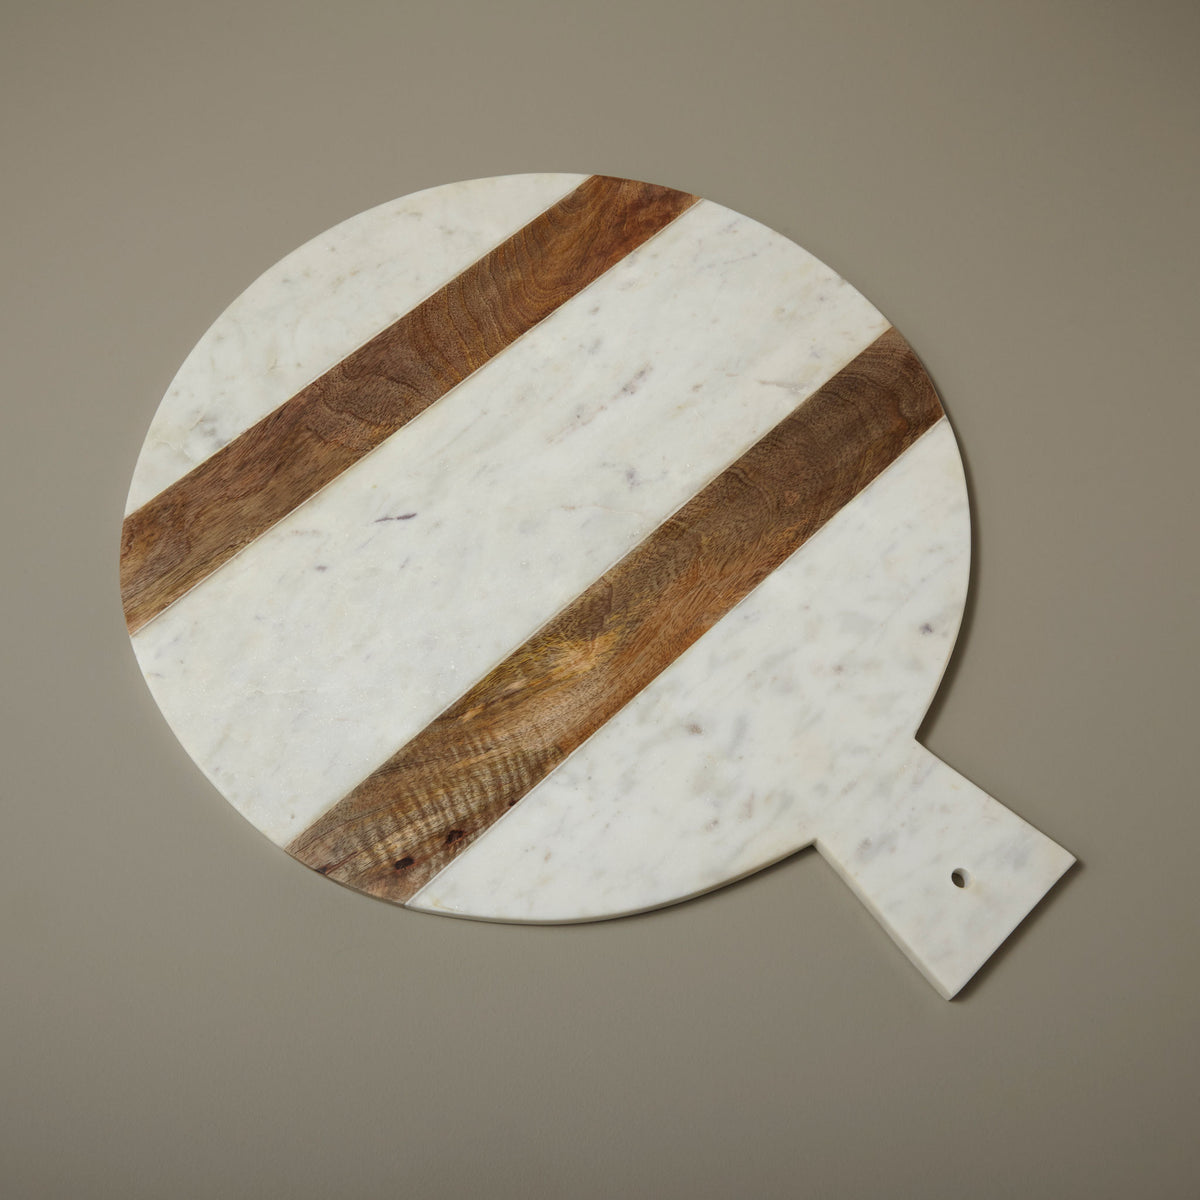 Pavia Oversized Serving Board